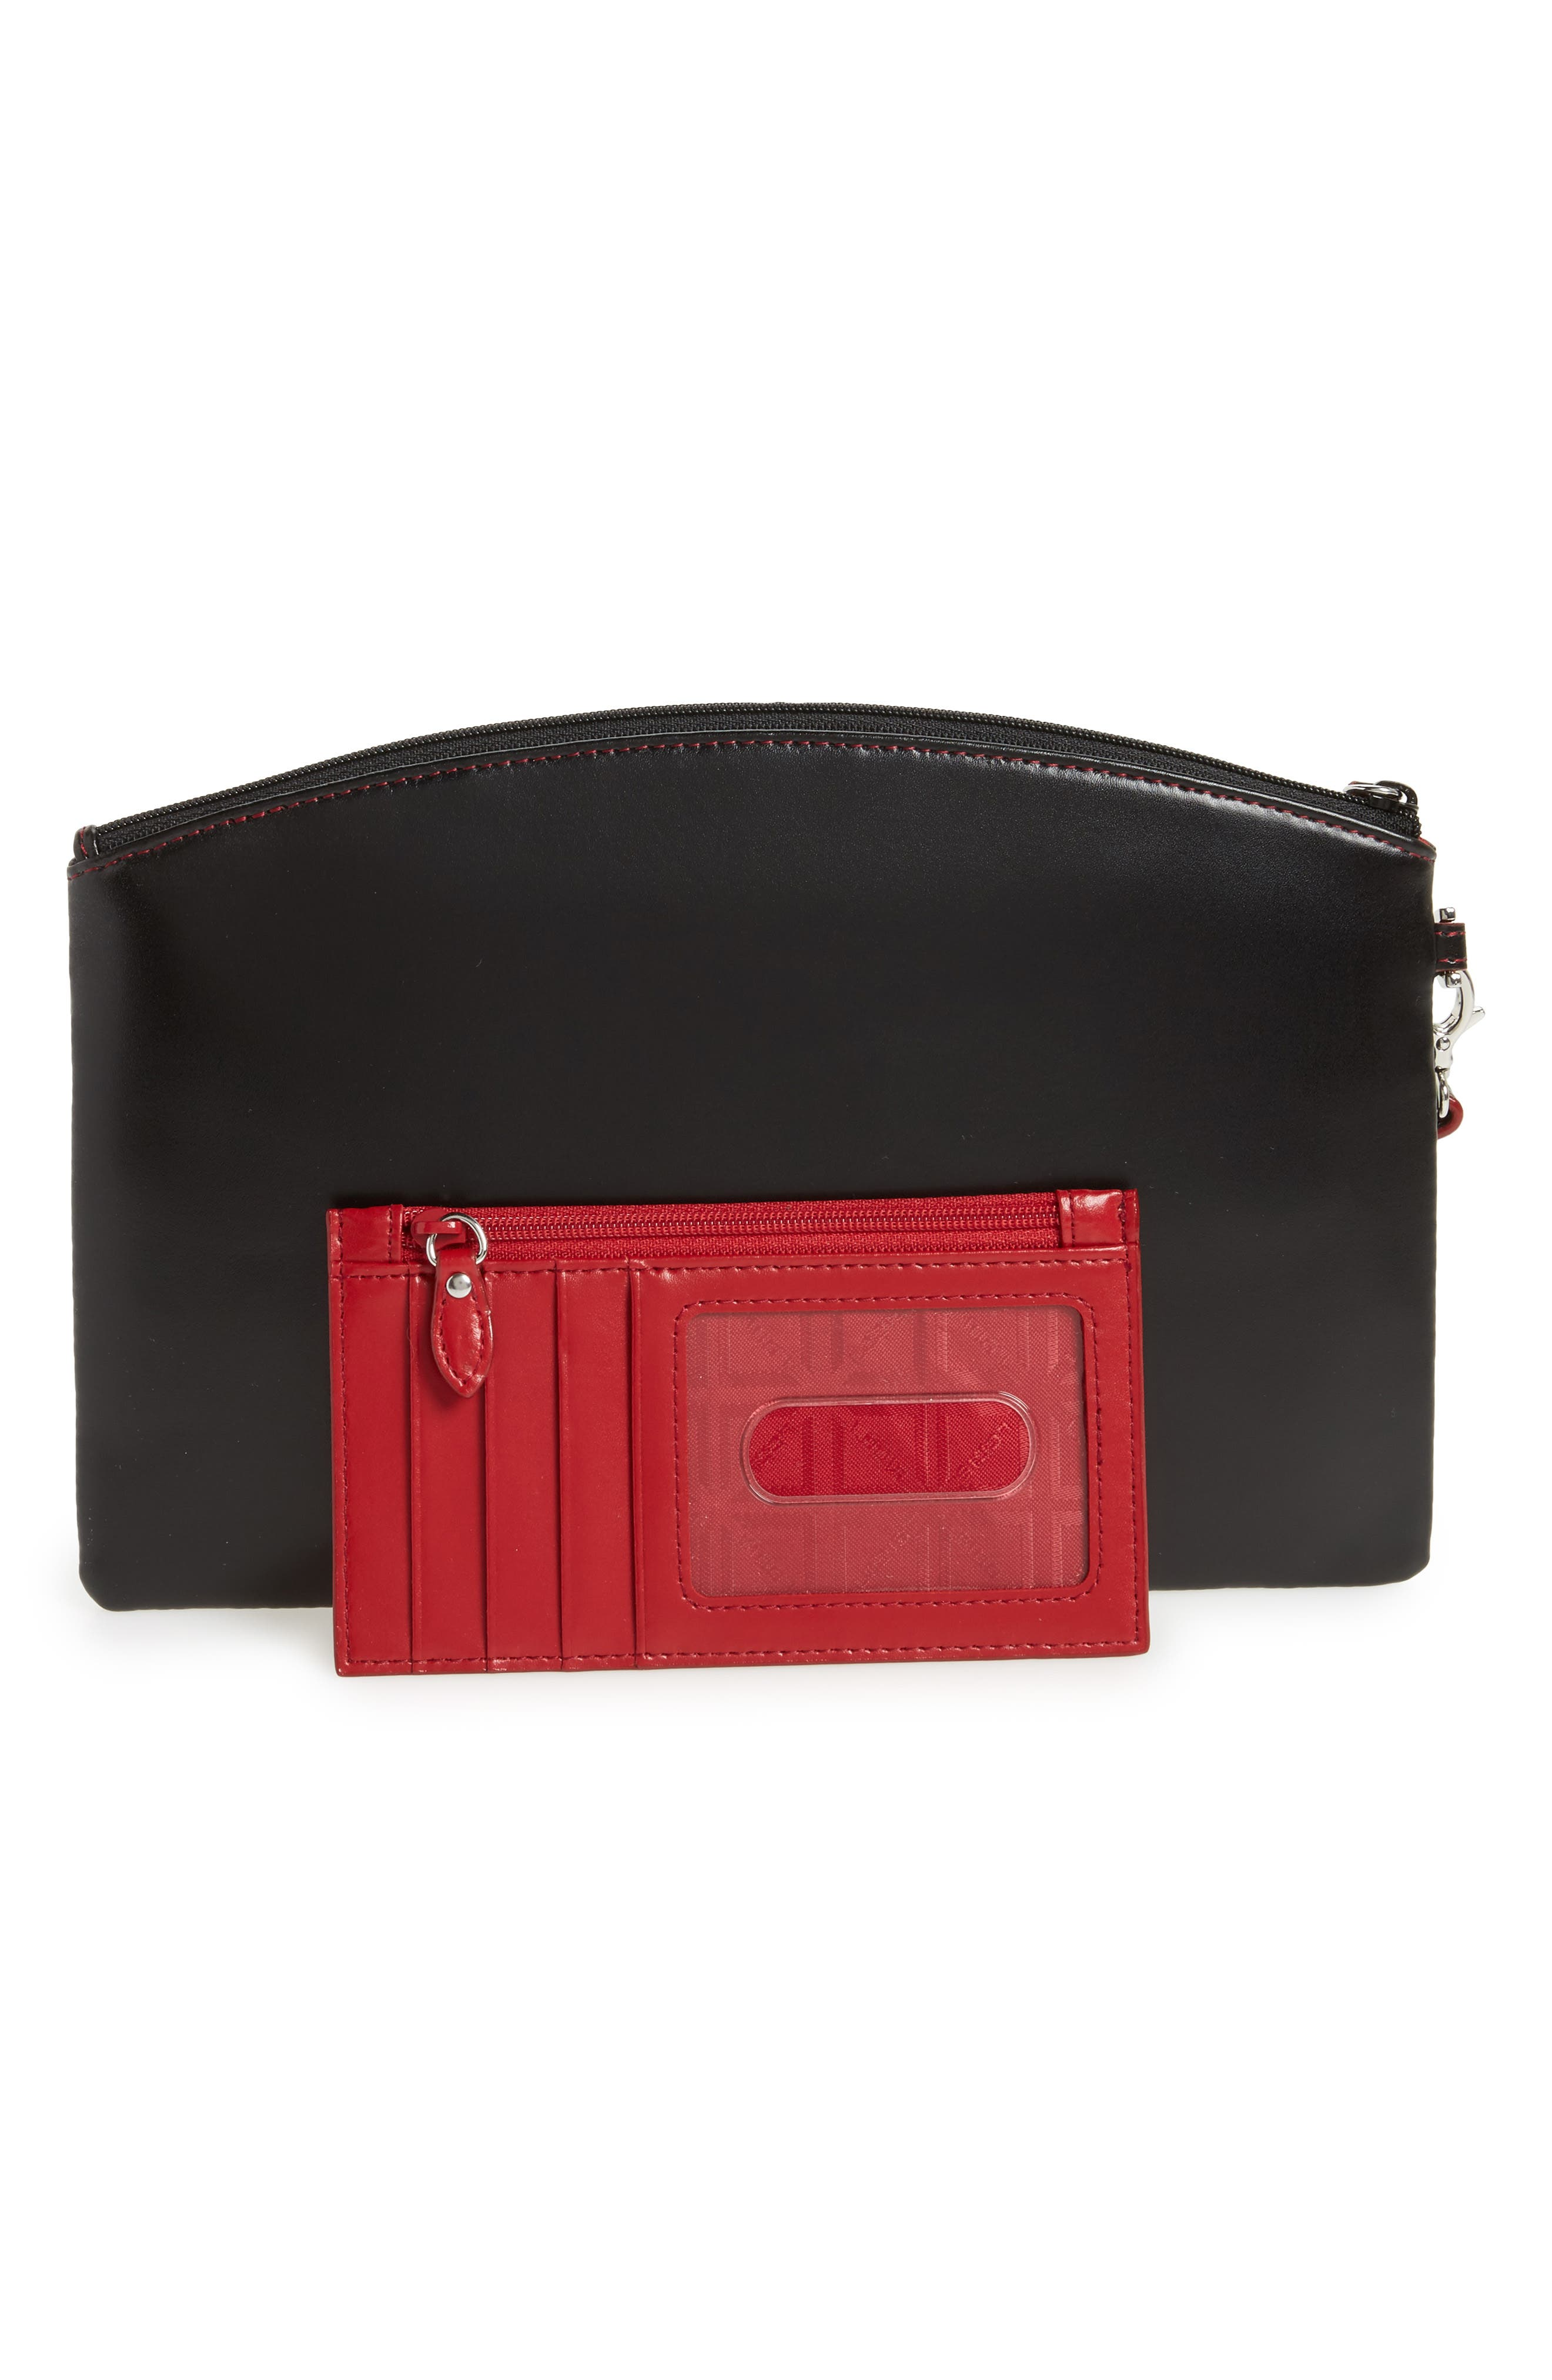 Miley Leather Wristlet & RFID Card Case,                             Alternate thumbnail 3, color,                             001